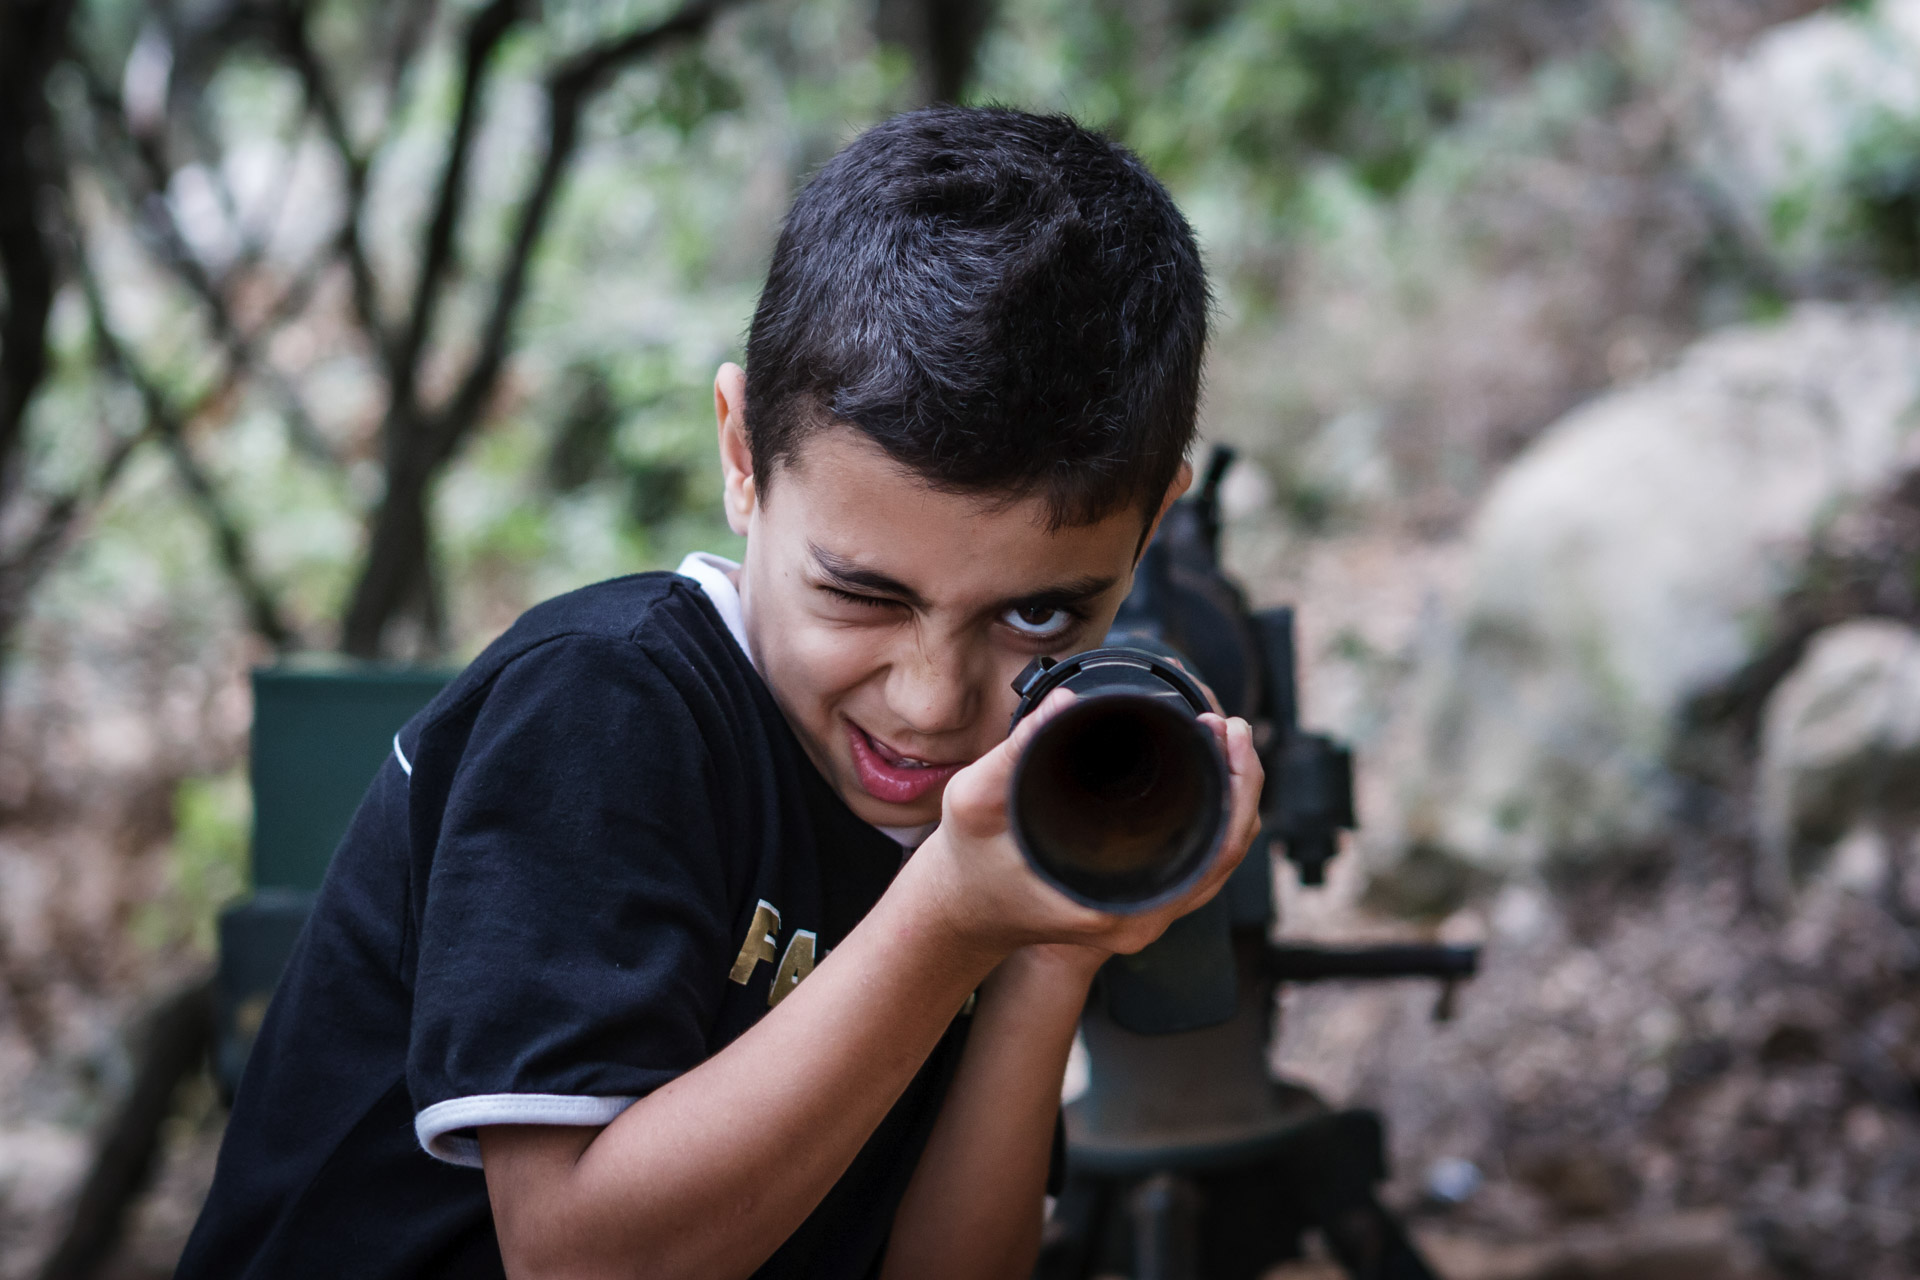 A young visitor of Mleeta takes aim with one of the exhibits.